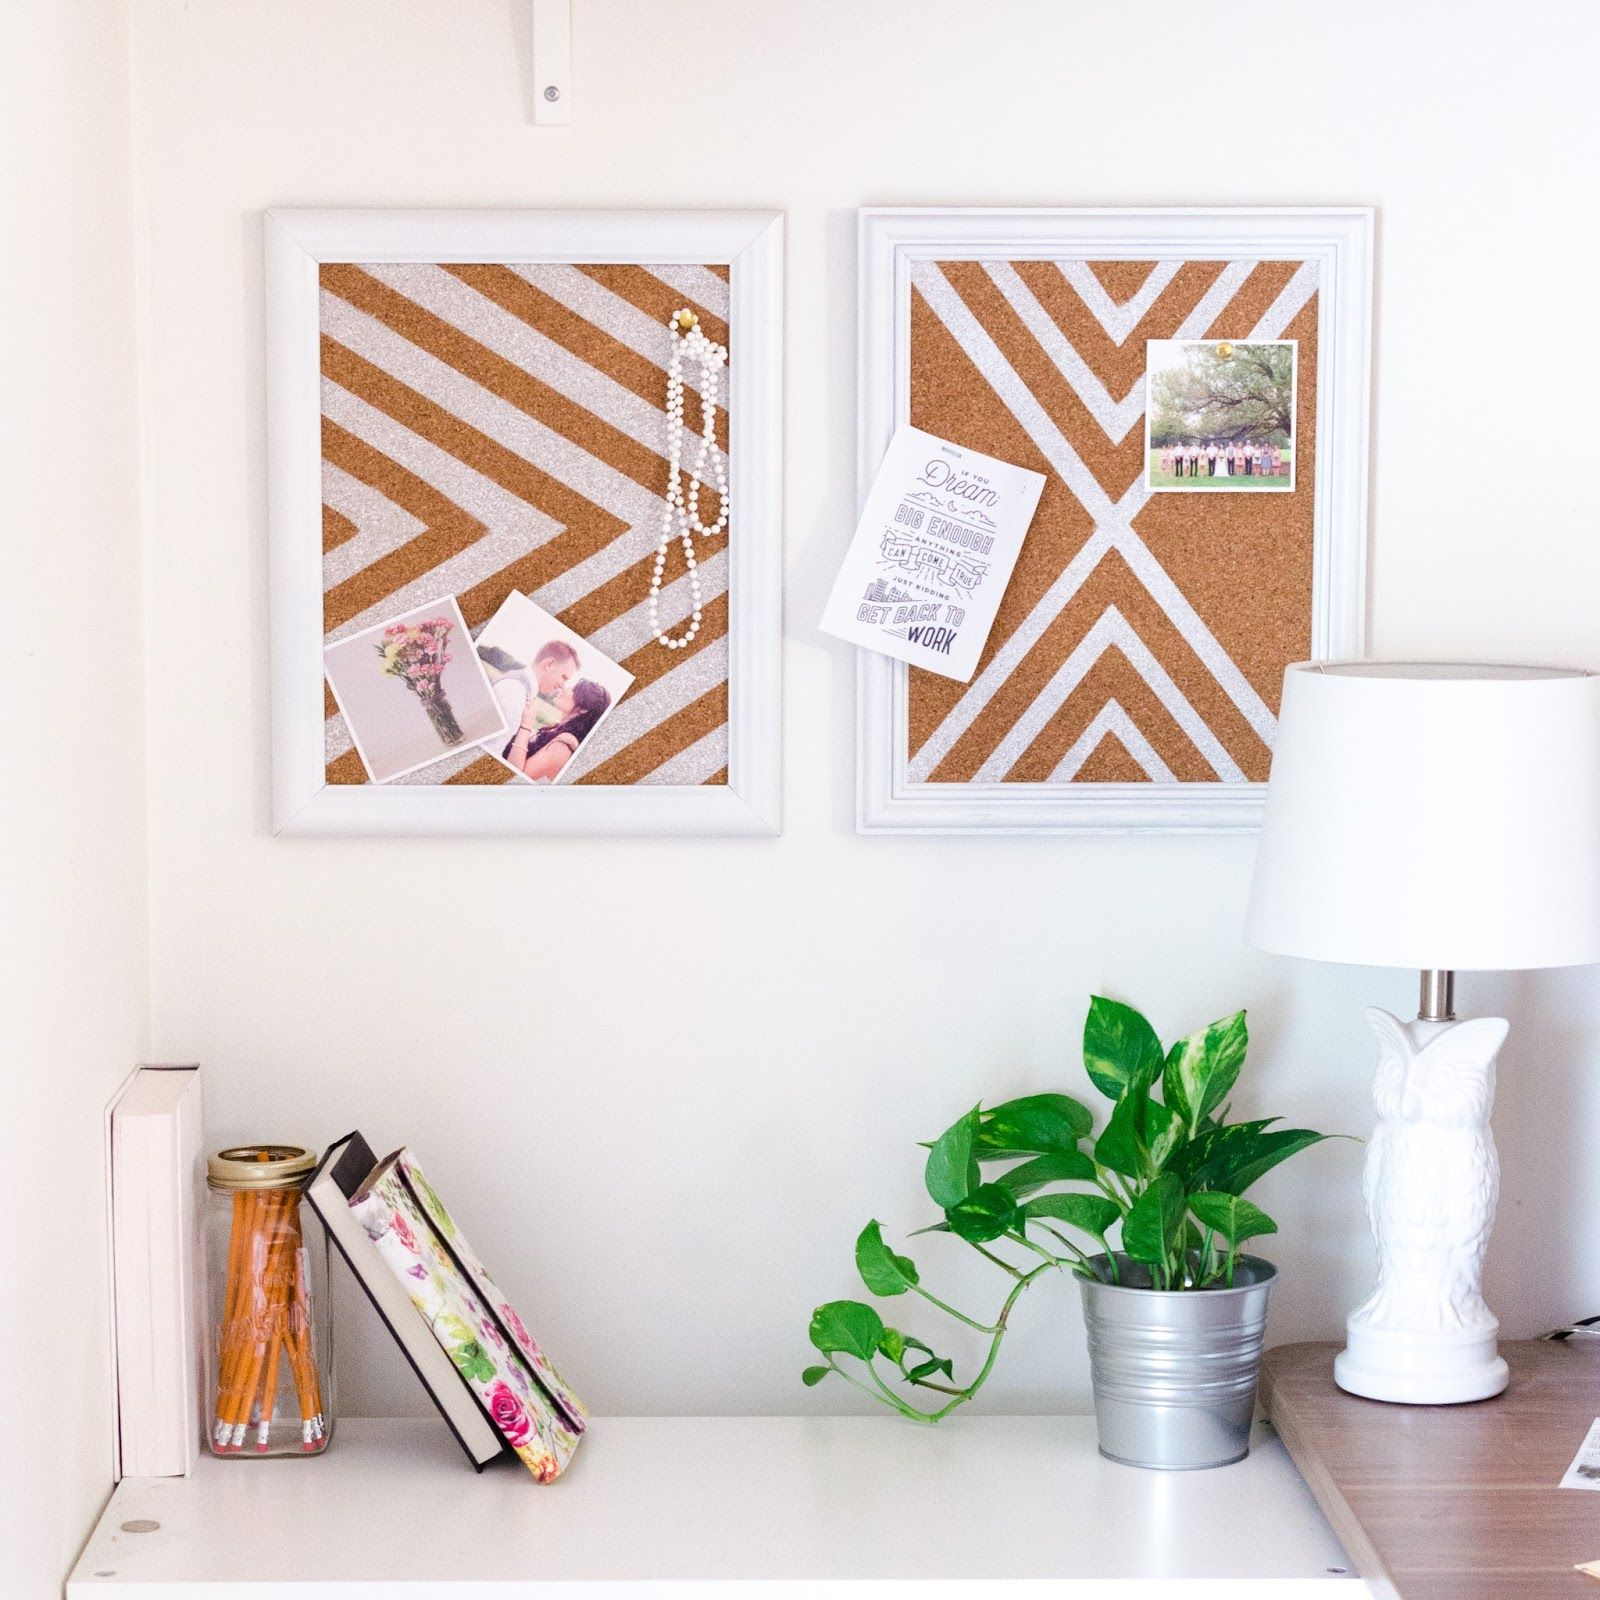 DIY patterned cork boards